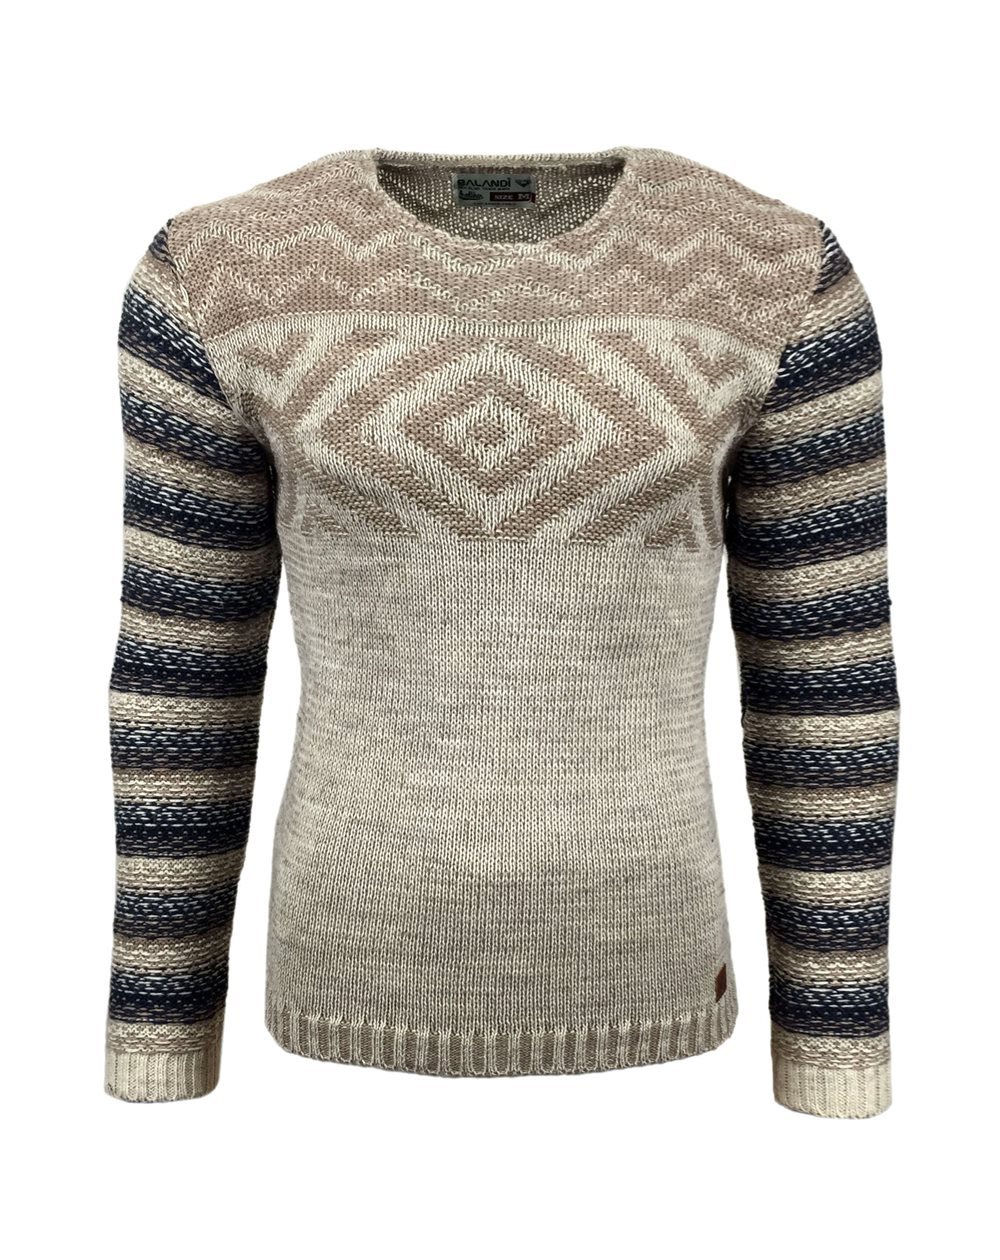 Subliminal Mode - Pull homme col arrondi grosse maille 15013